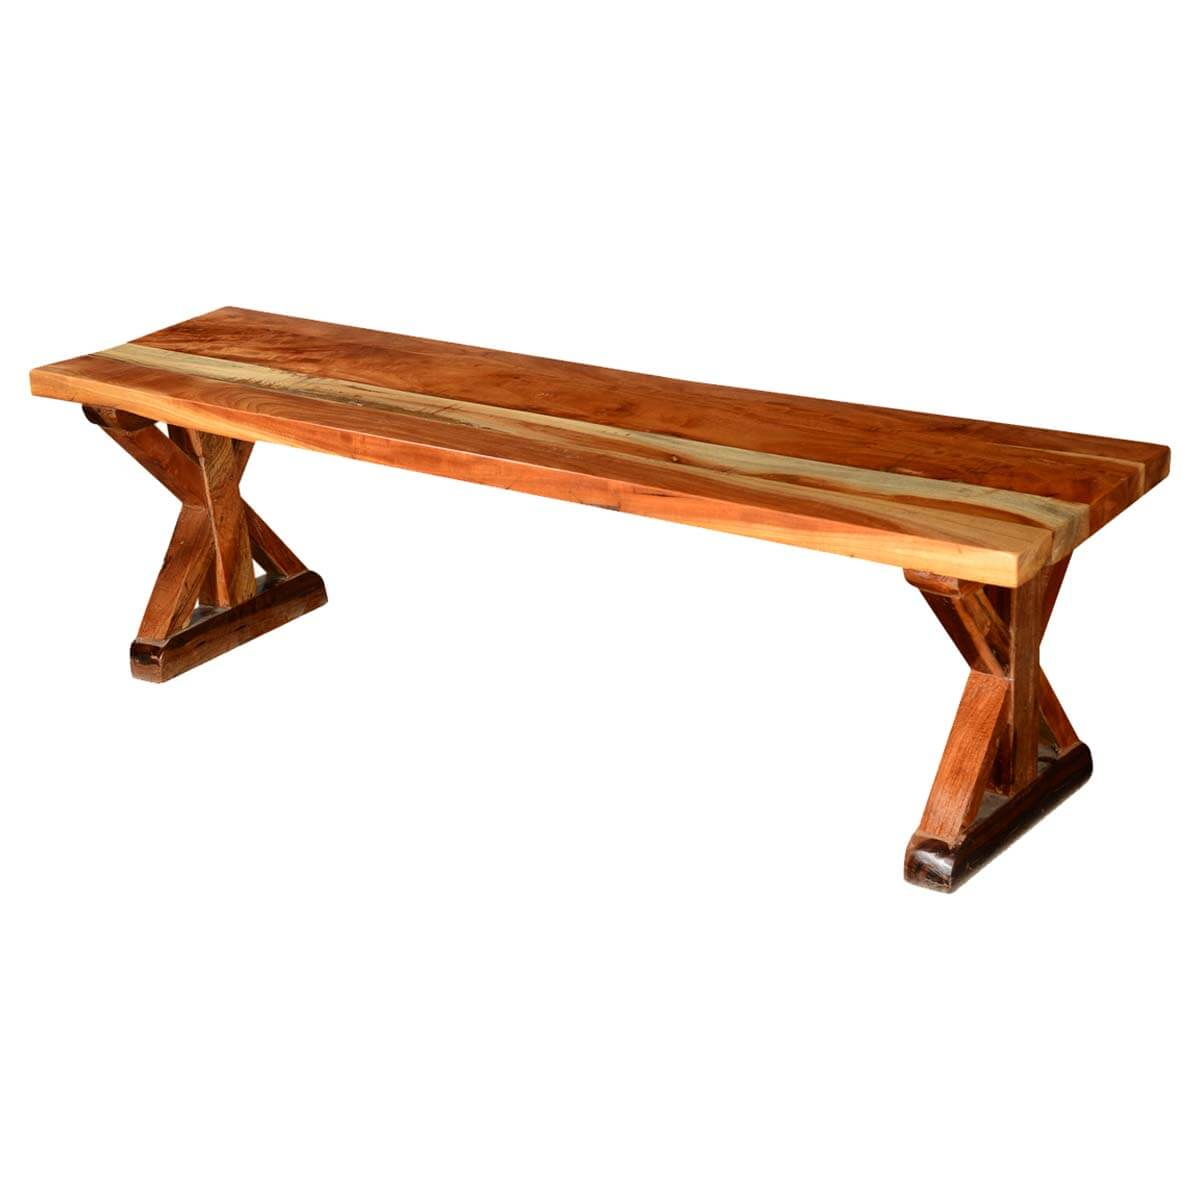 Rustic X Legs Acacia Wood 59 Backless Bench